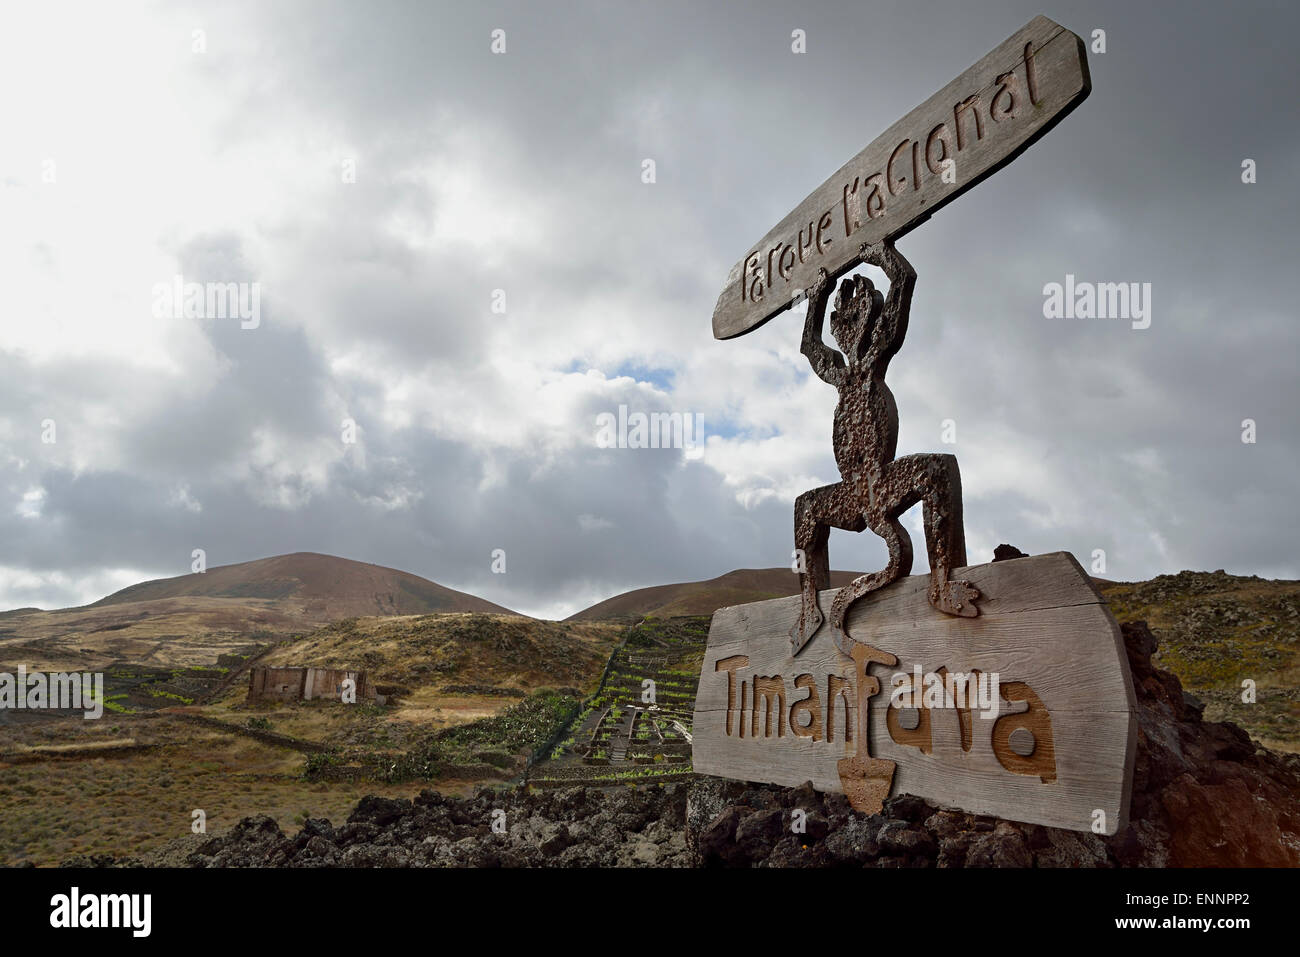 Canary Islands Lanzarote The Devil Symbol Of The Volcanic Island